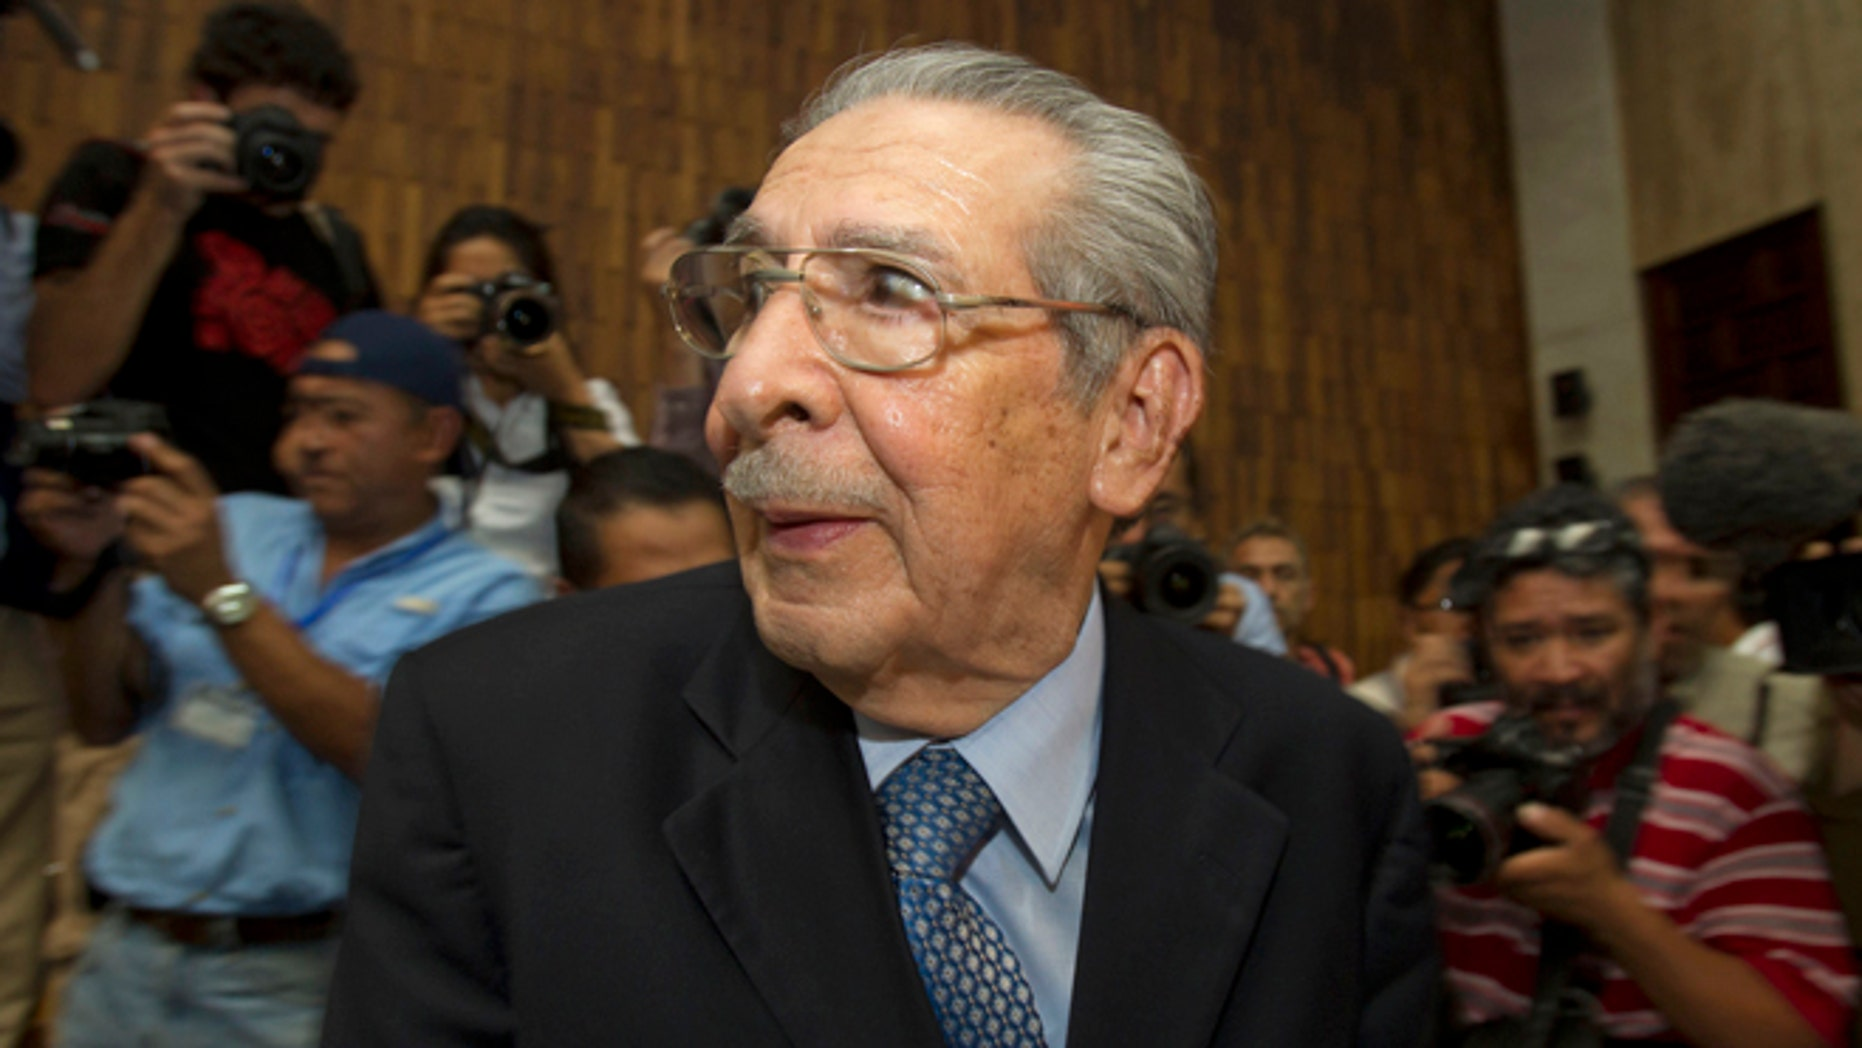 FILE - In this Friday, May 10, 2013 file photo, Guatemala's former dictator Jose Efrain Rios Montt wears headphones as he listens to the verdict in his genocide trial in Guatemala City.